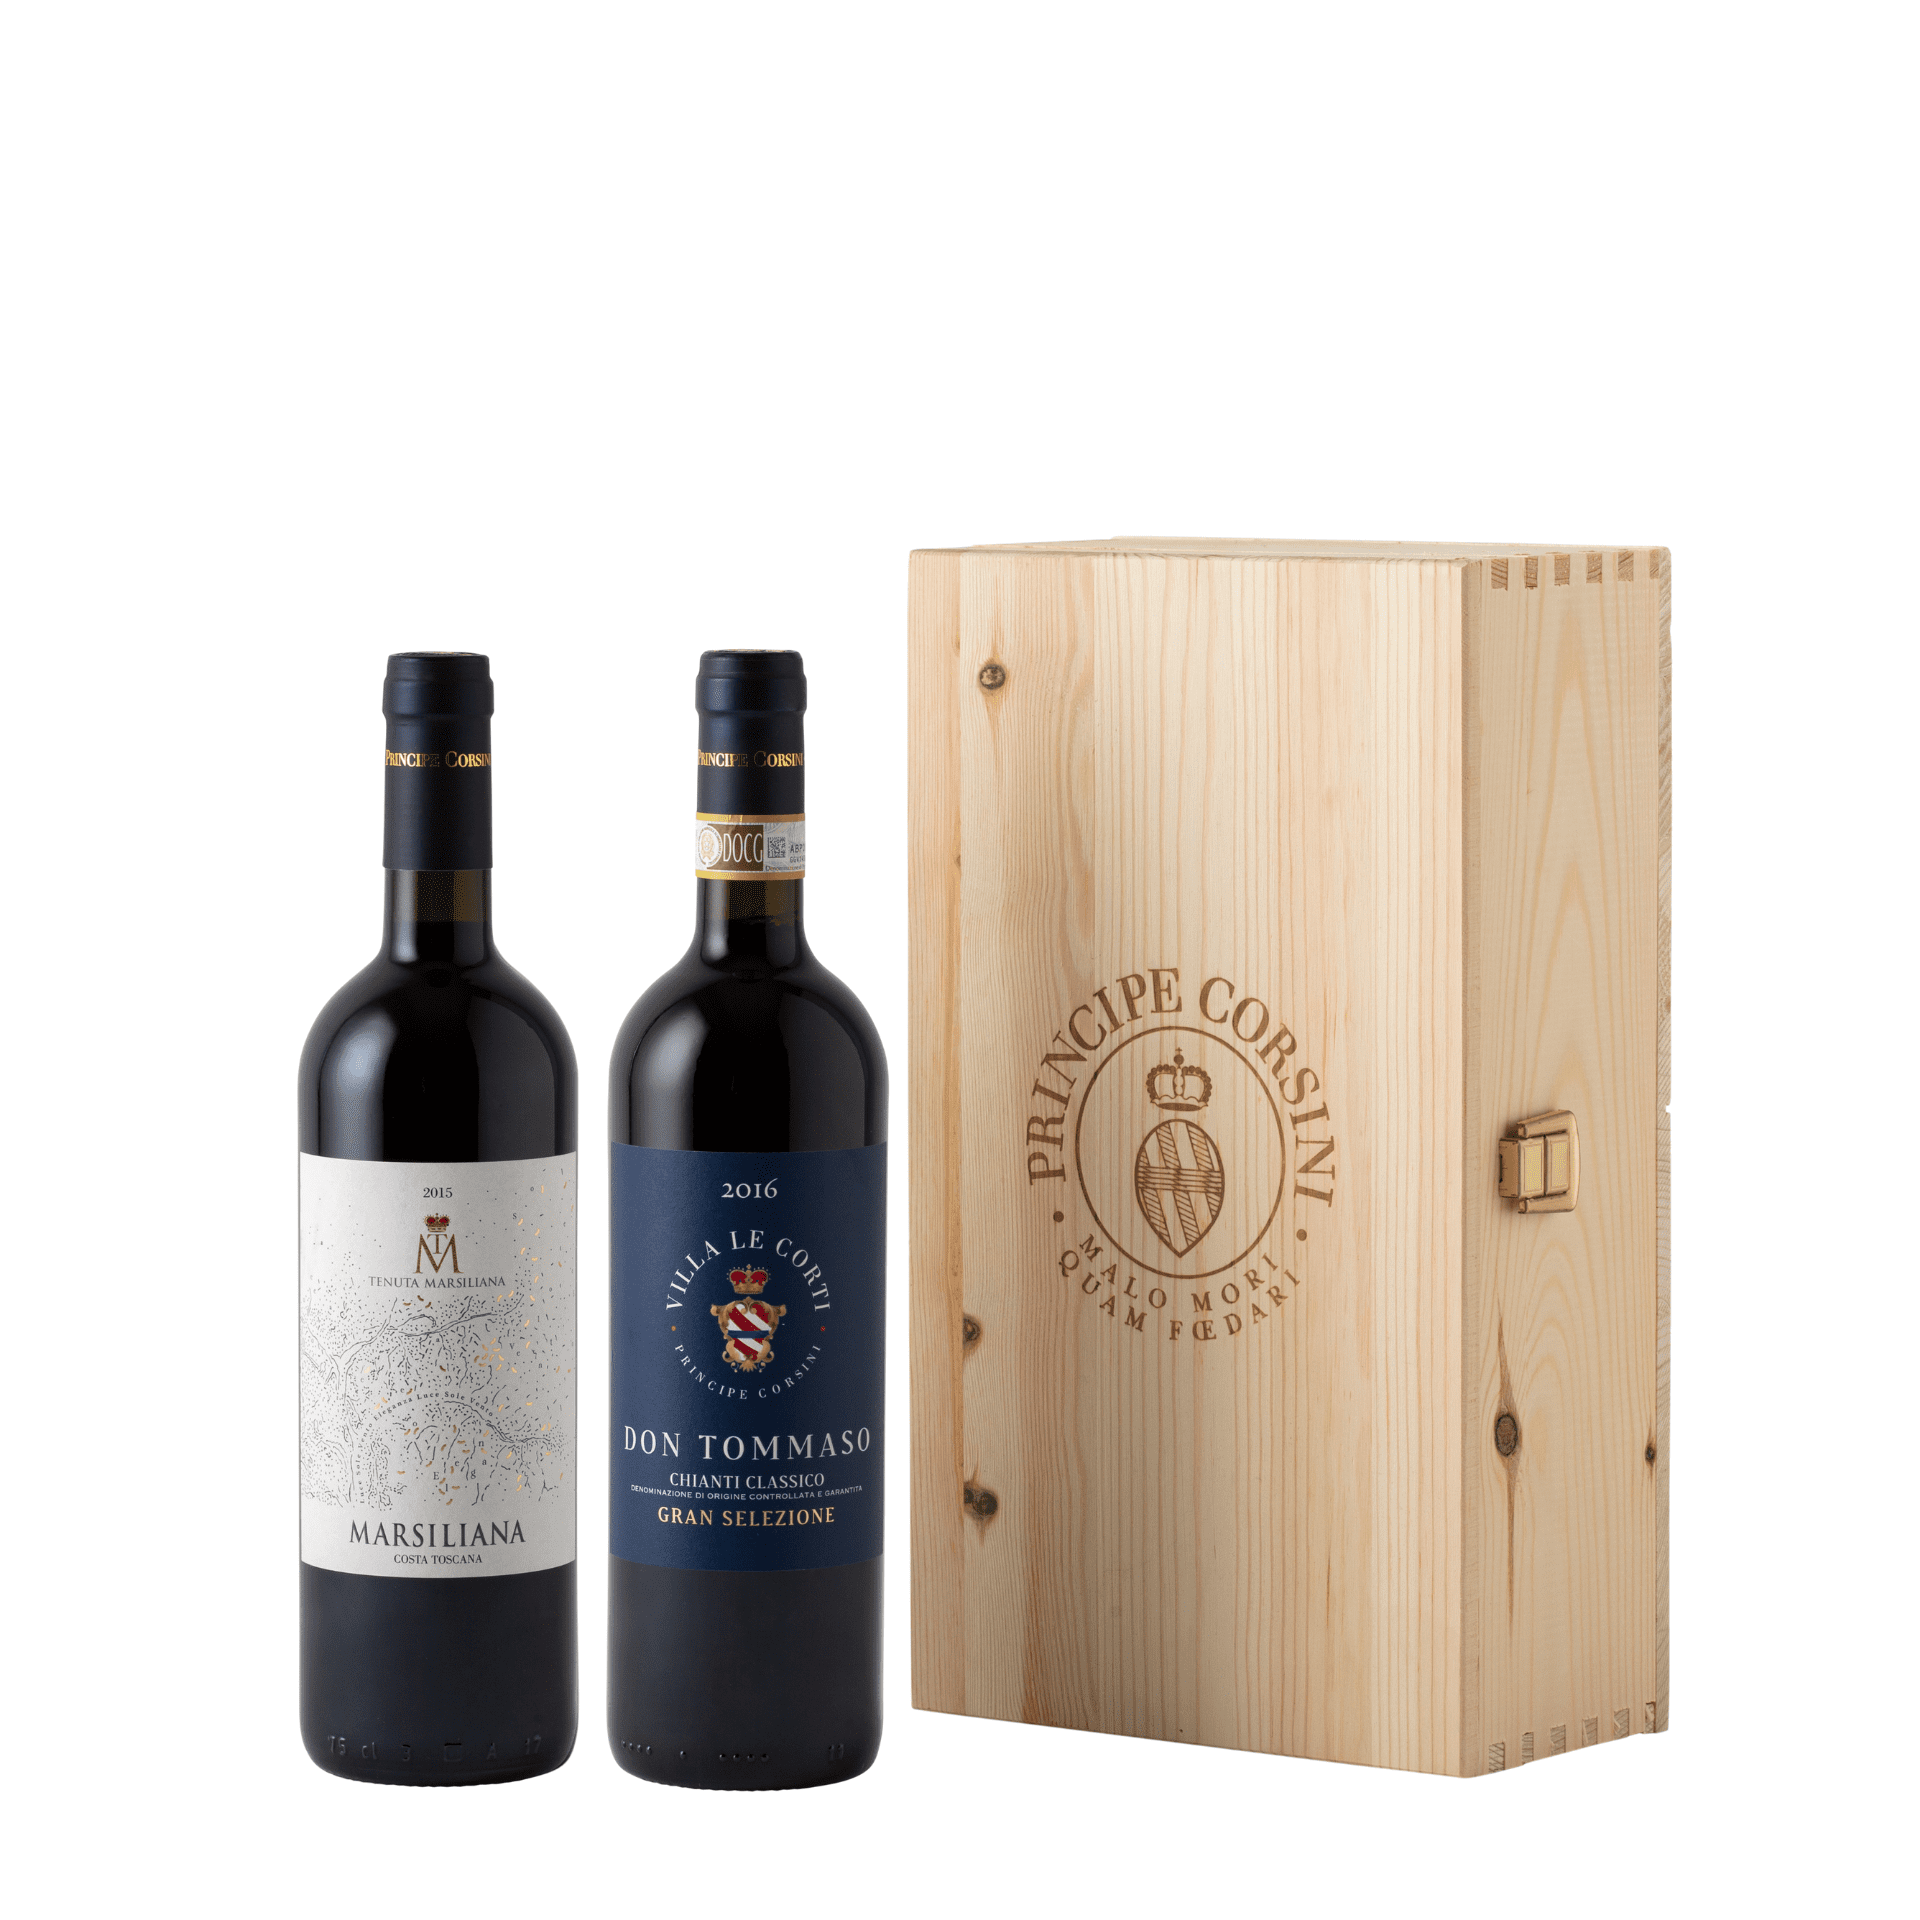 Don Tommaso 2016 + Marsiliana 2016 + Wooden Box